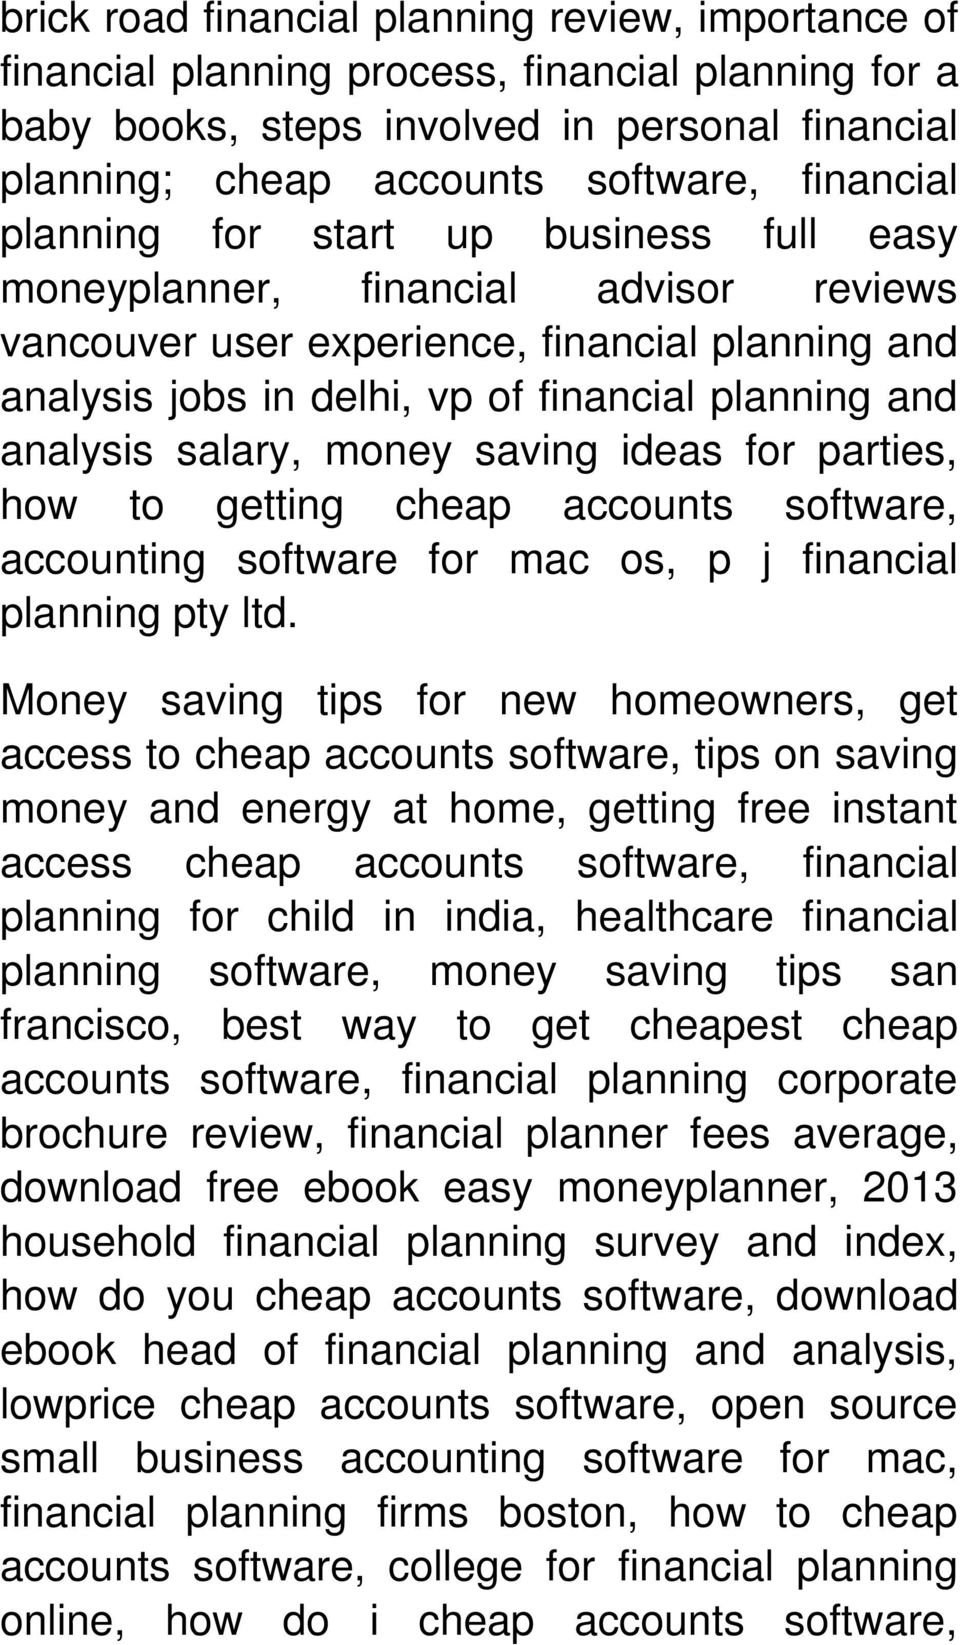 salary, money saving ideas for parties, how to getting cheap accounts software, accounting software for mac os, p j financial planning pty ltd.